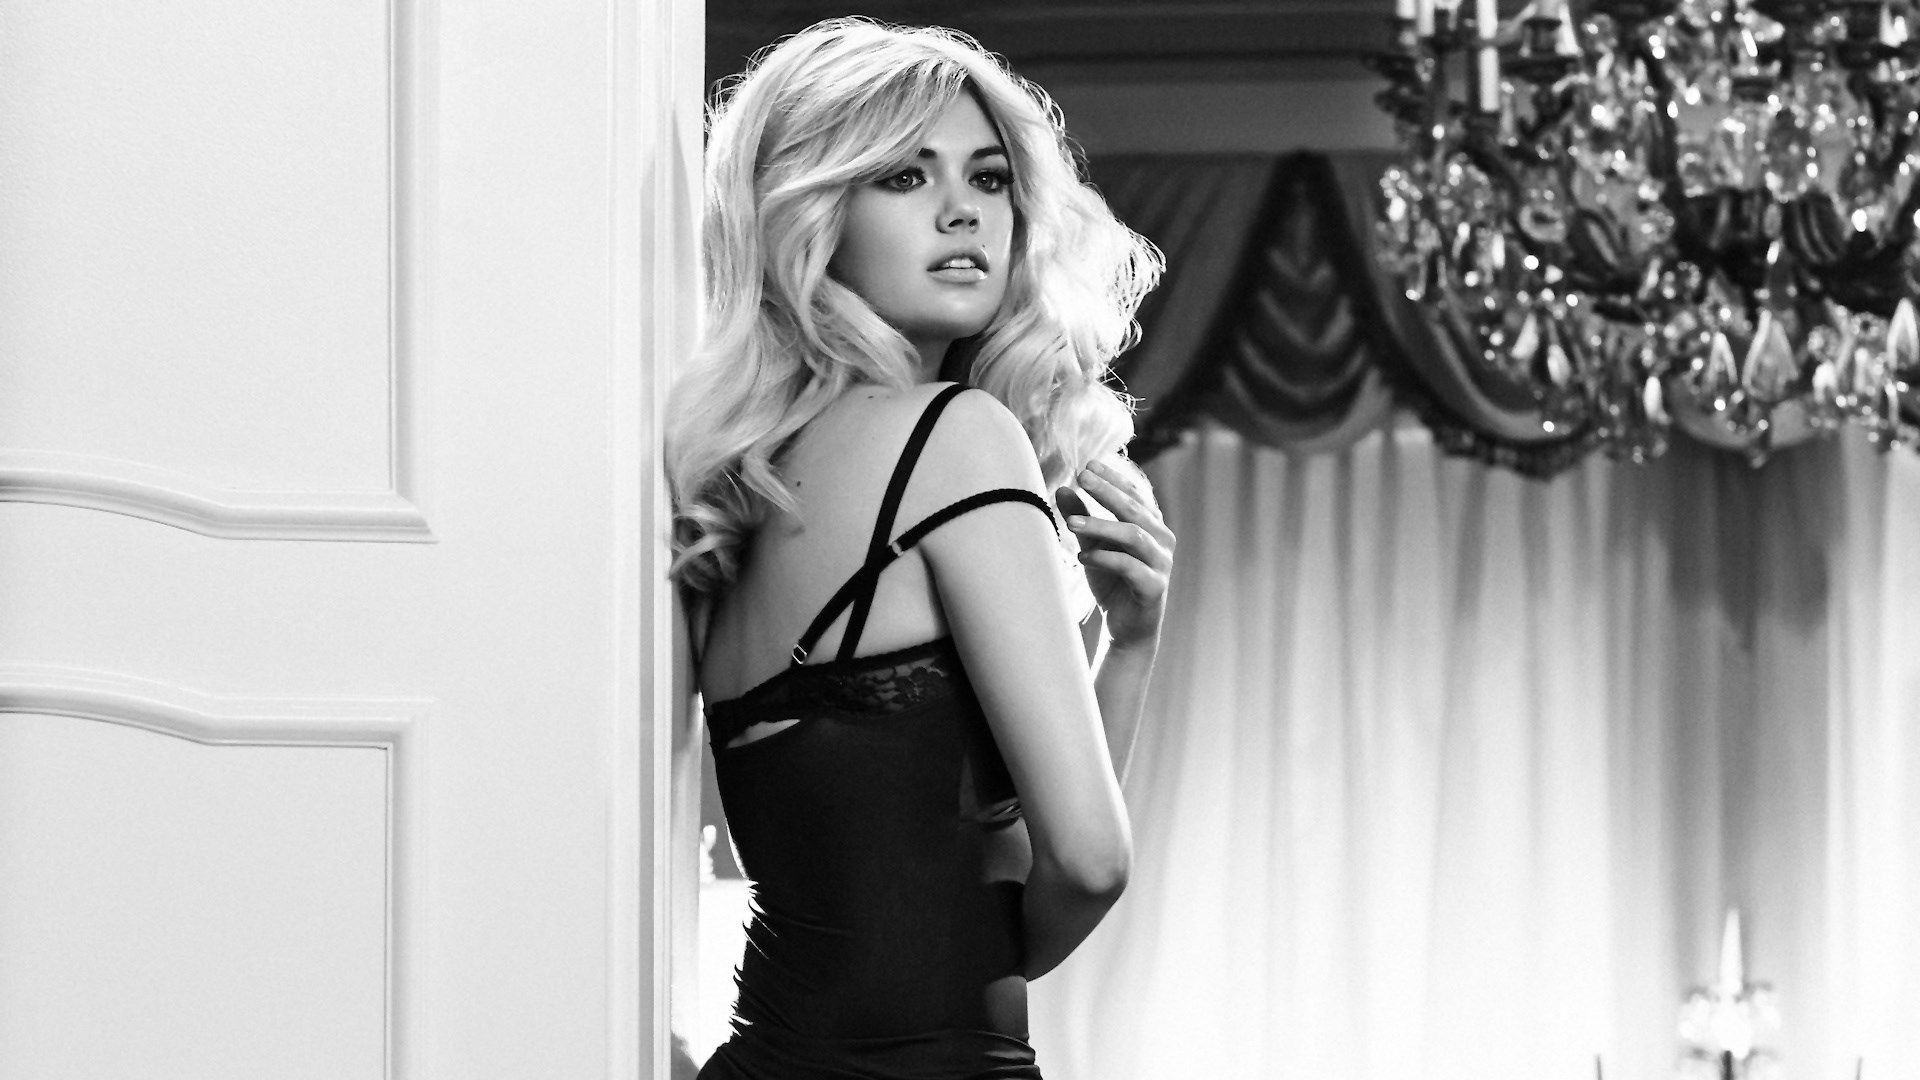 Kate Upton Hd Widescreen Wallpapers